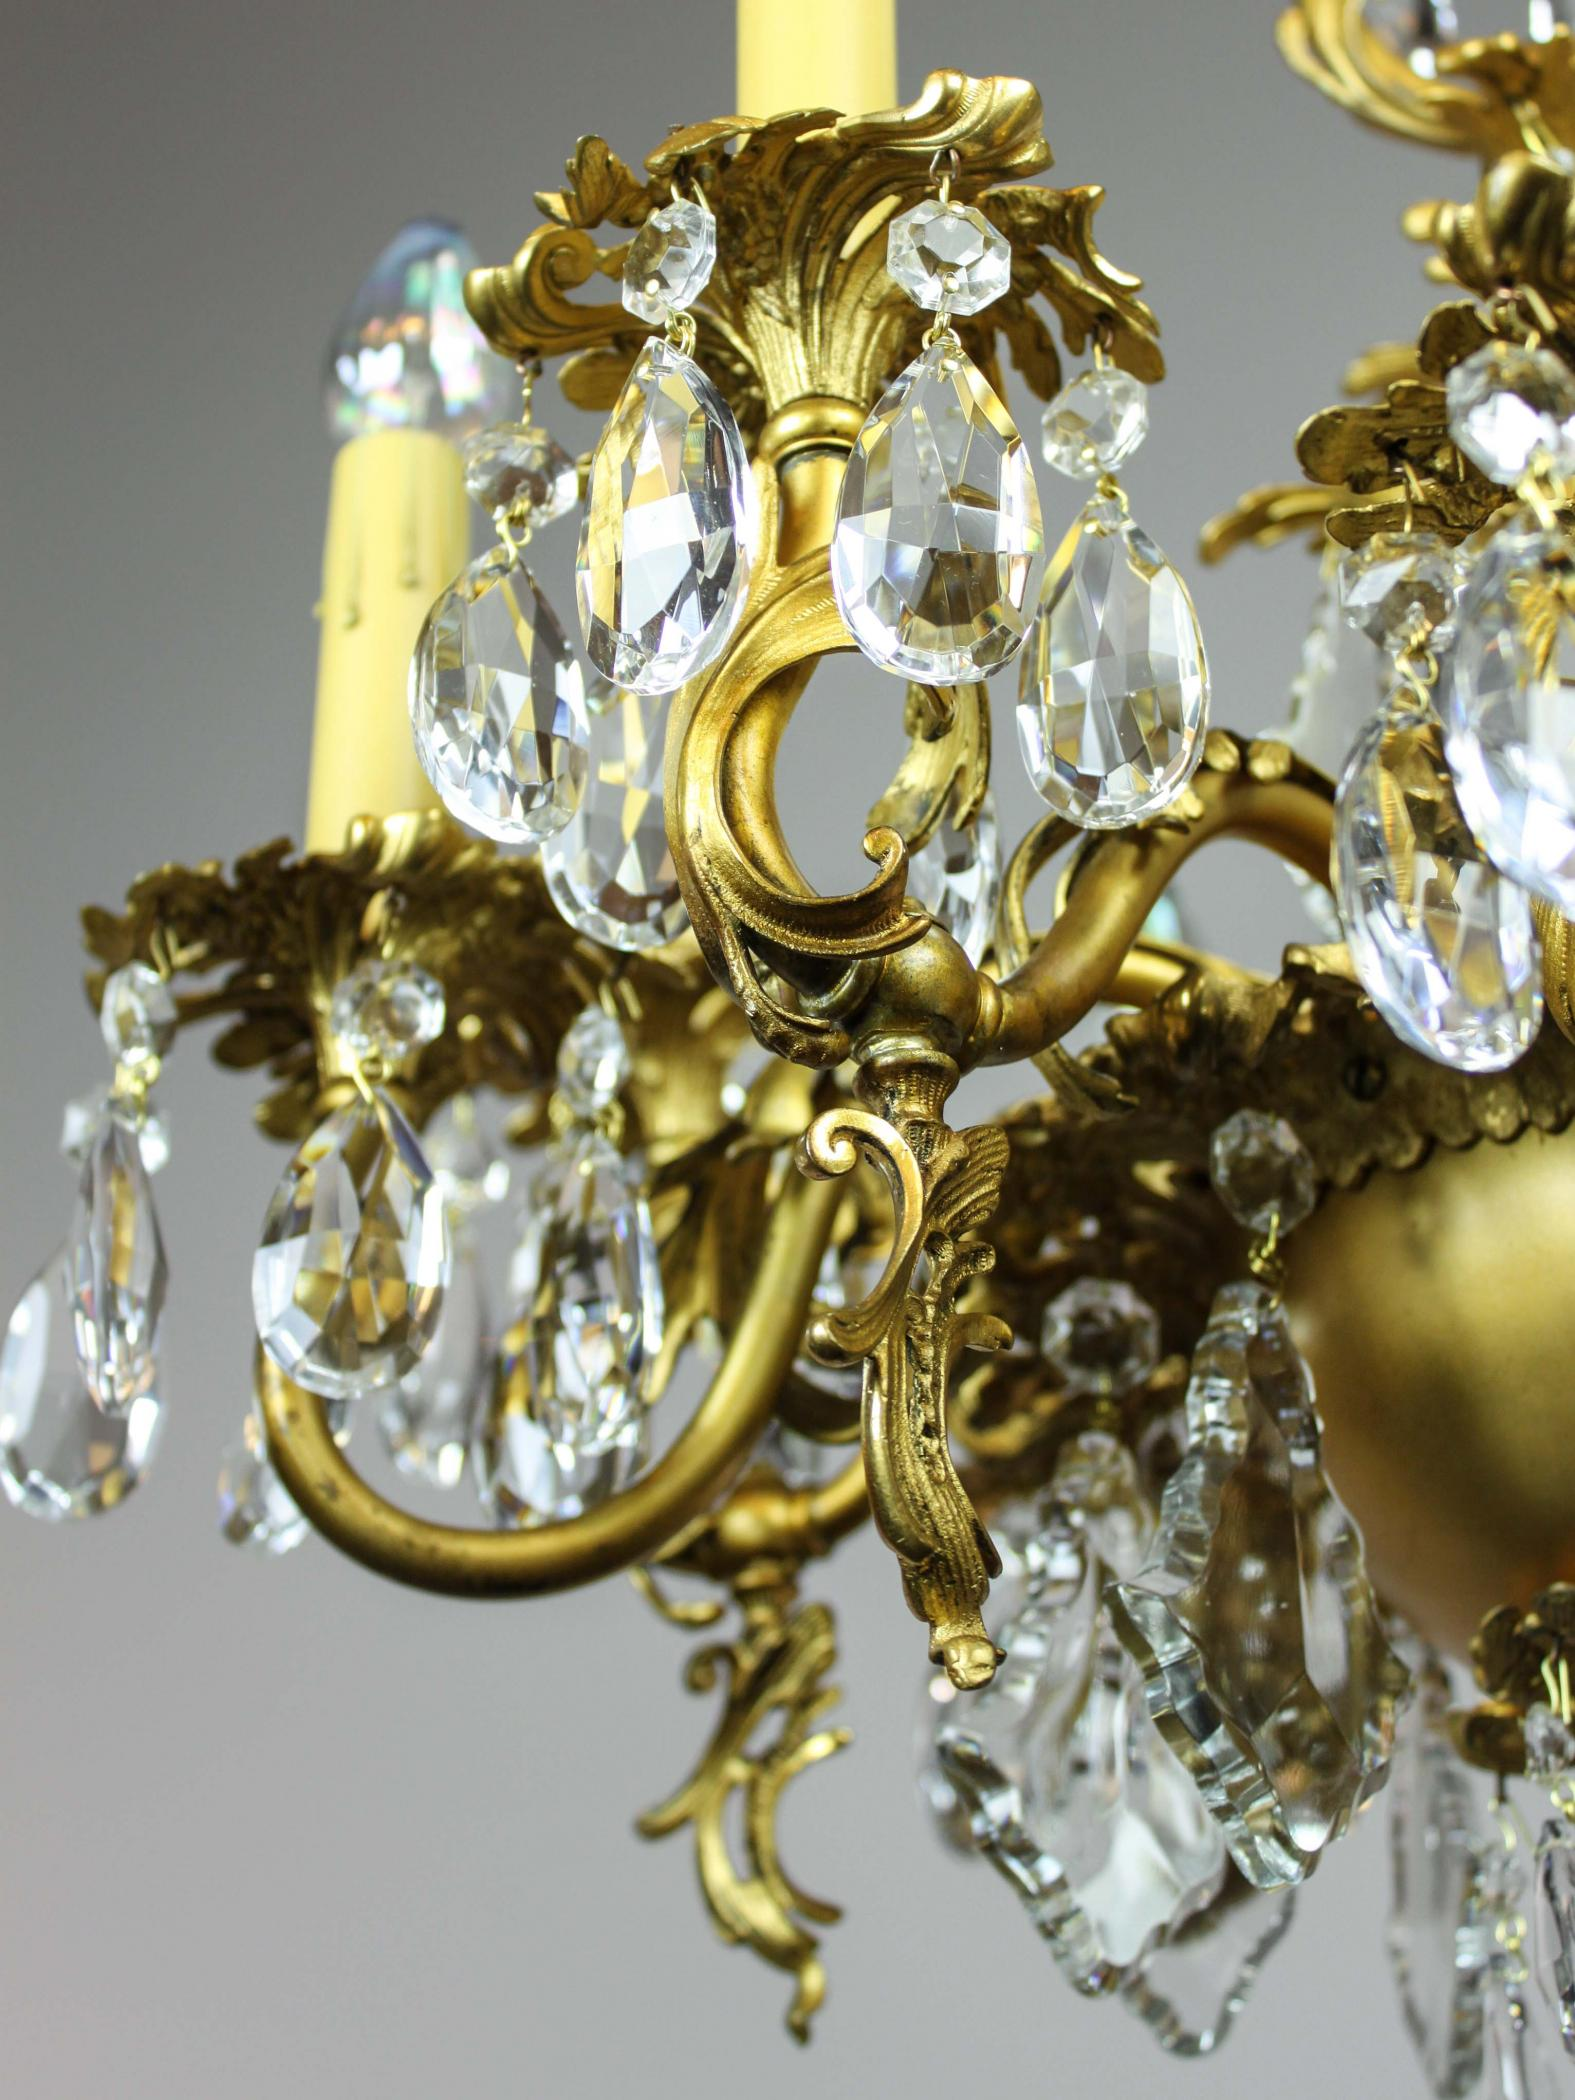 Gold plated rococo 1910 converted gas chandelier 9 light modernism gold plated rococo 1910 converted gas chandelier 9 light mozeypictures Image collections